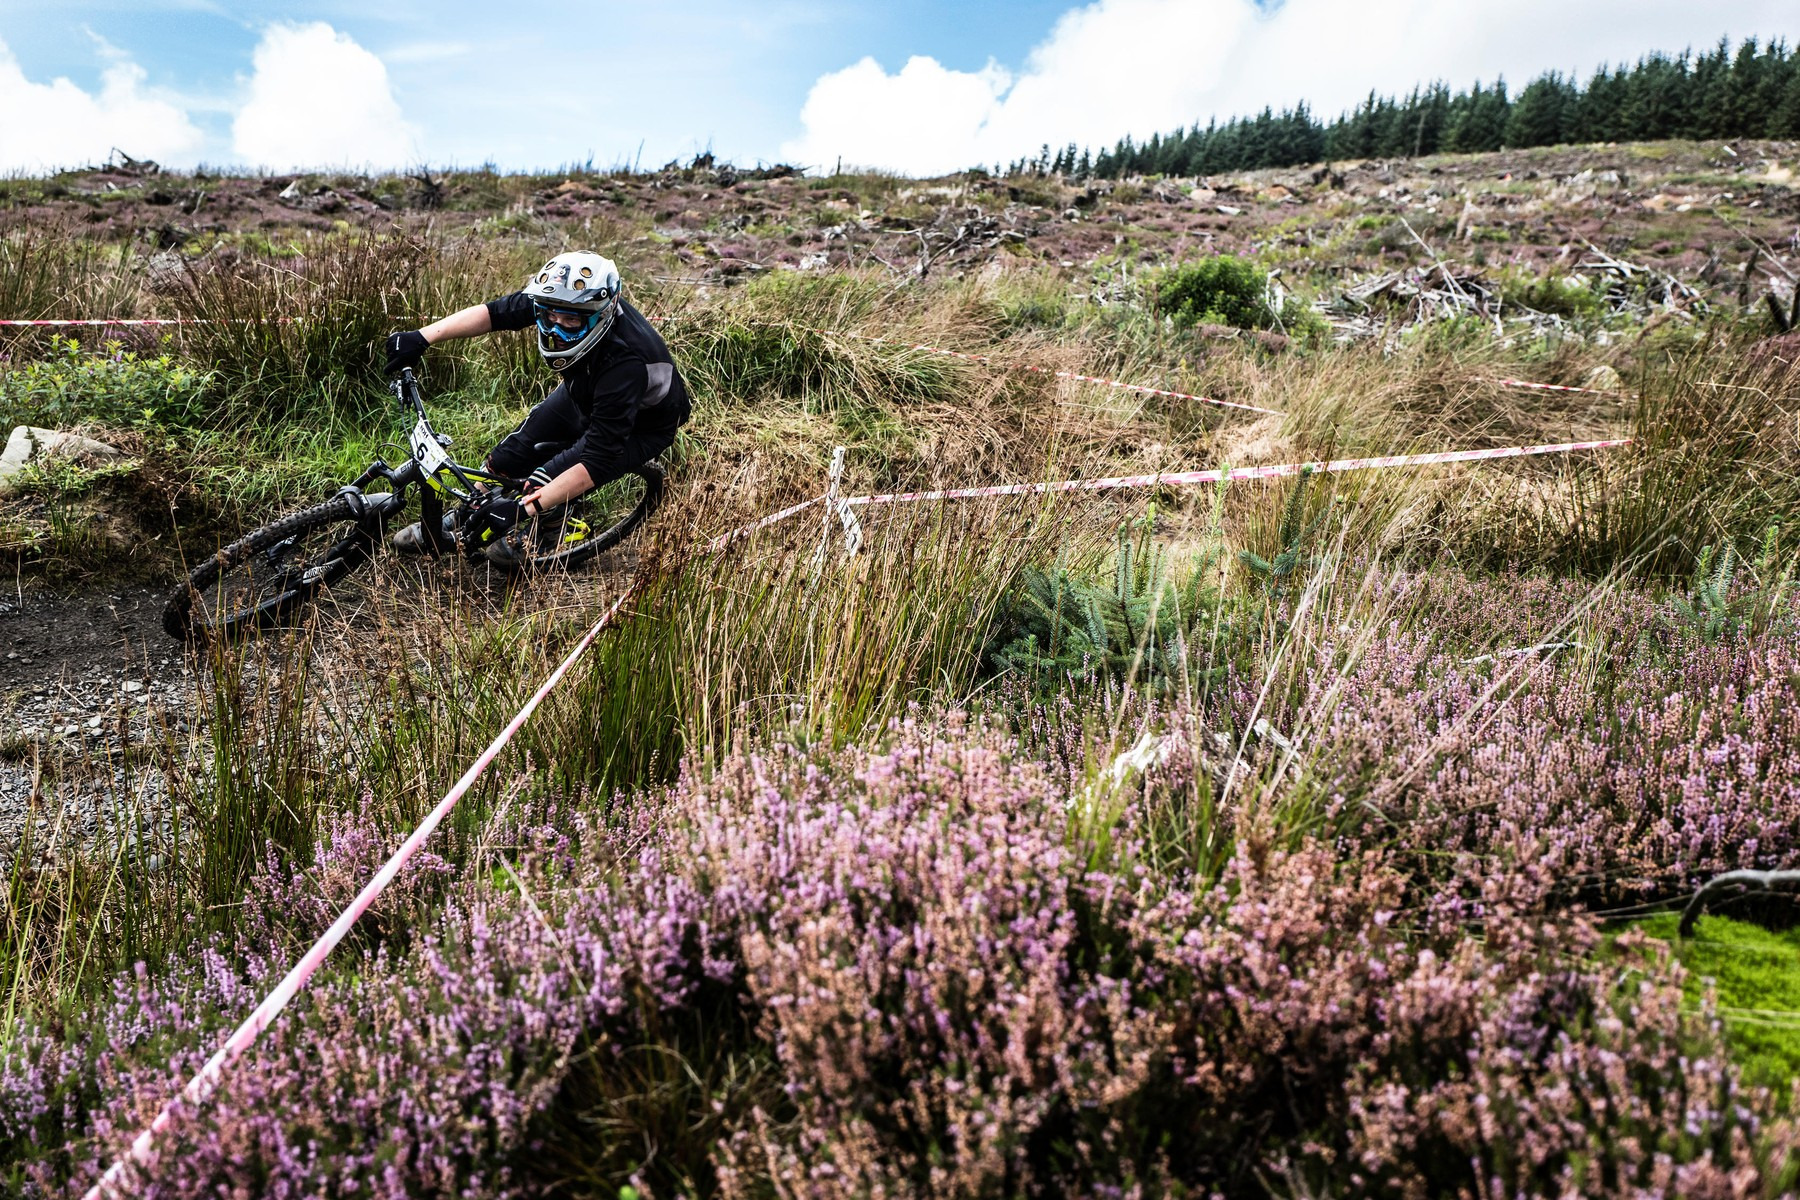 Kielder Forest, Kielder, Northumberland, UK. 11th September 2016. Mountain bikers compete in the Northern Downhill time trial event in Kielder Forest., Image: 299883673, License: Rights-managed, Restrictions: , Model Release: no, Credit line: Profimedia, Alamy